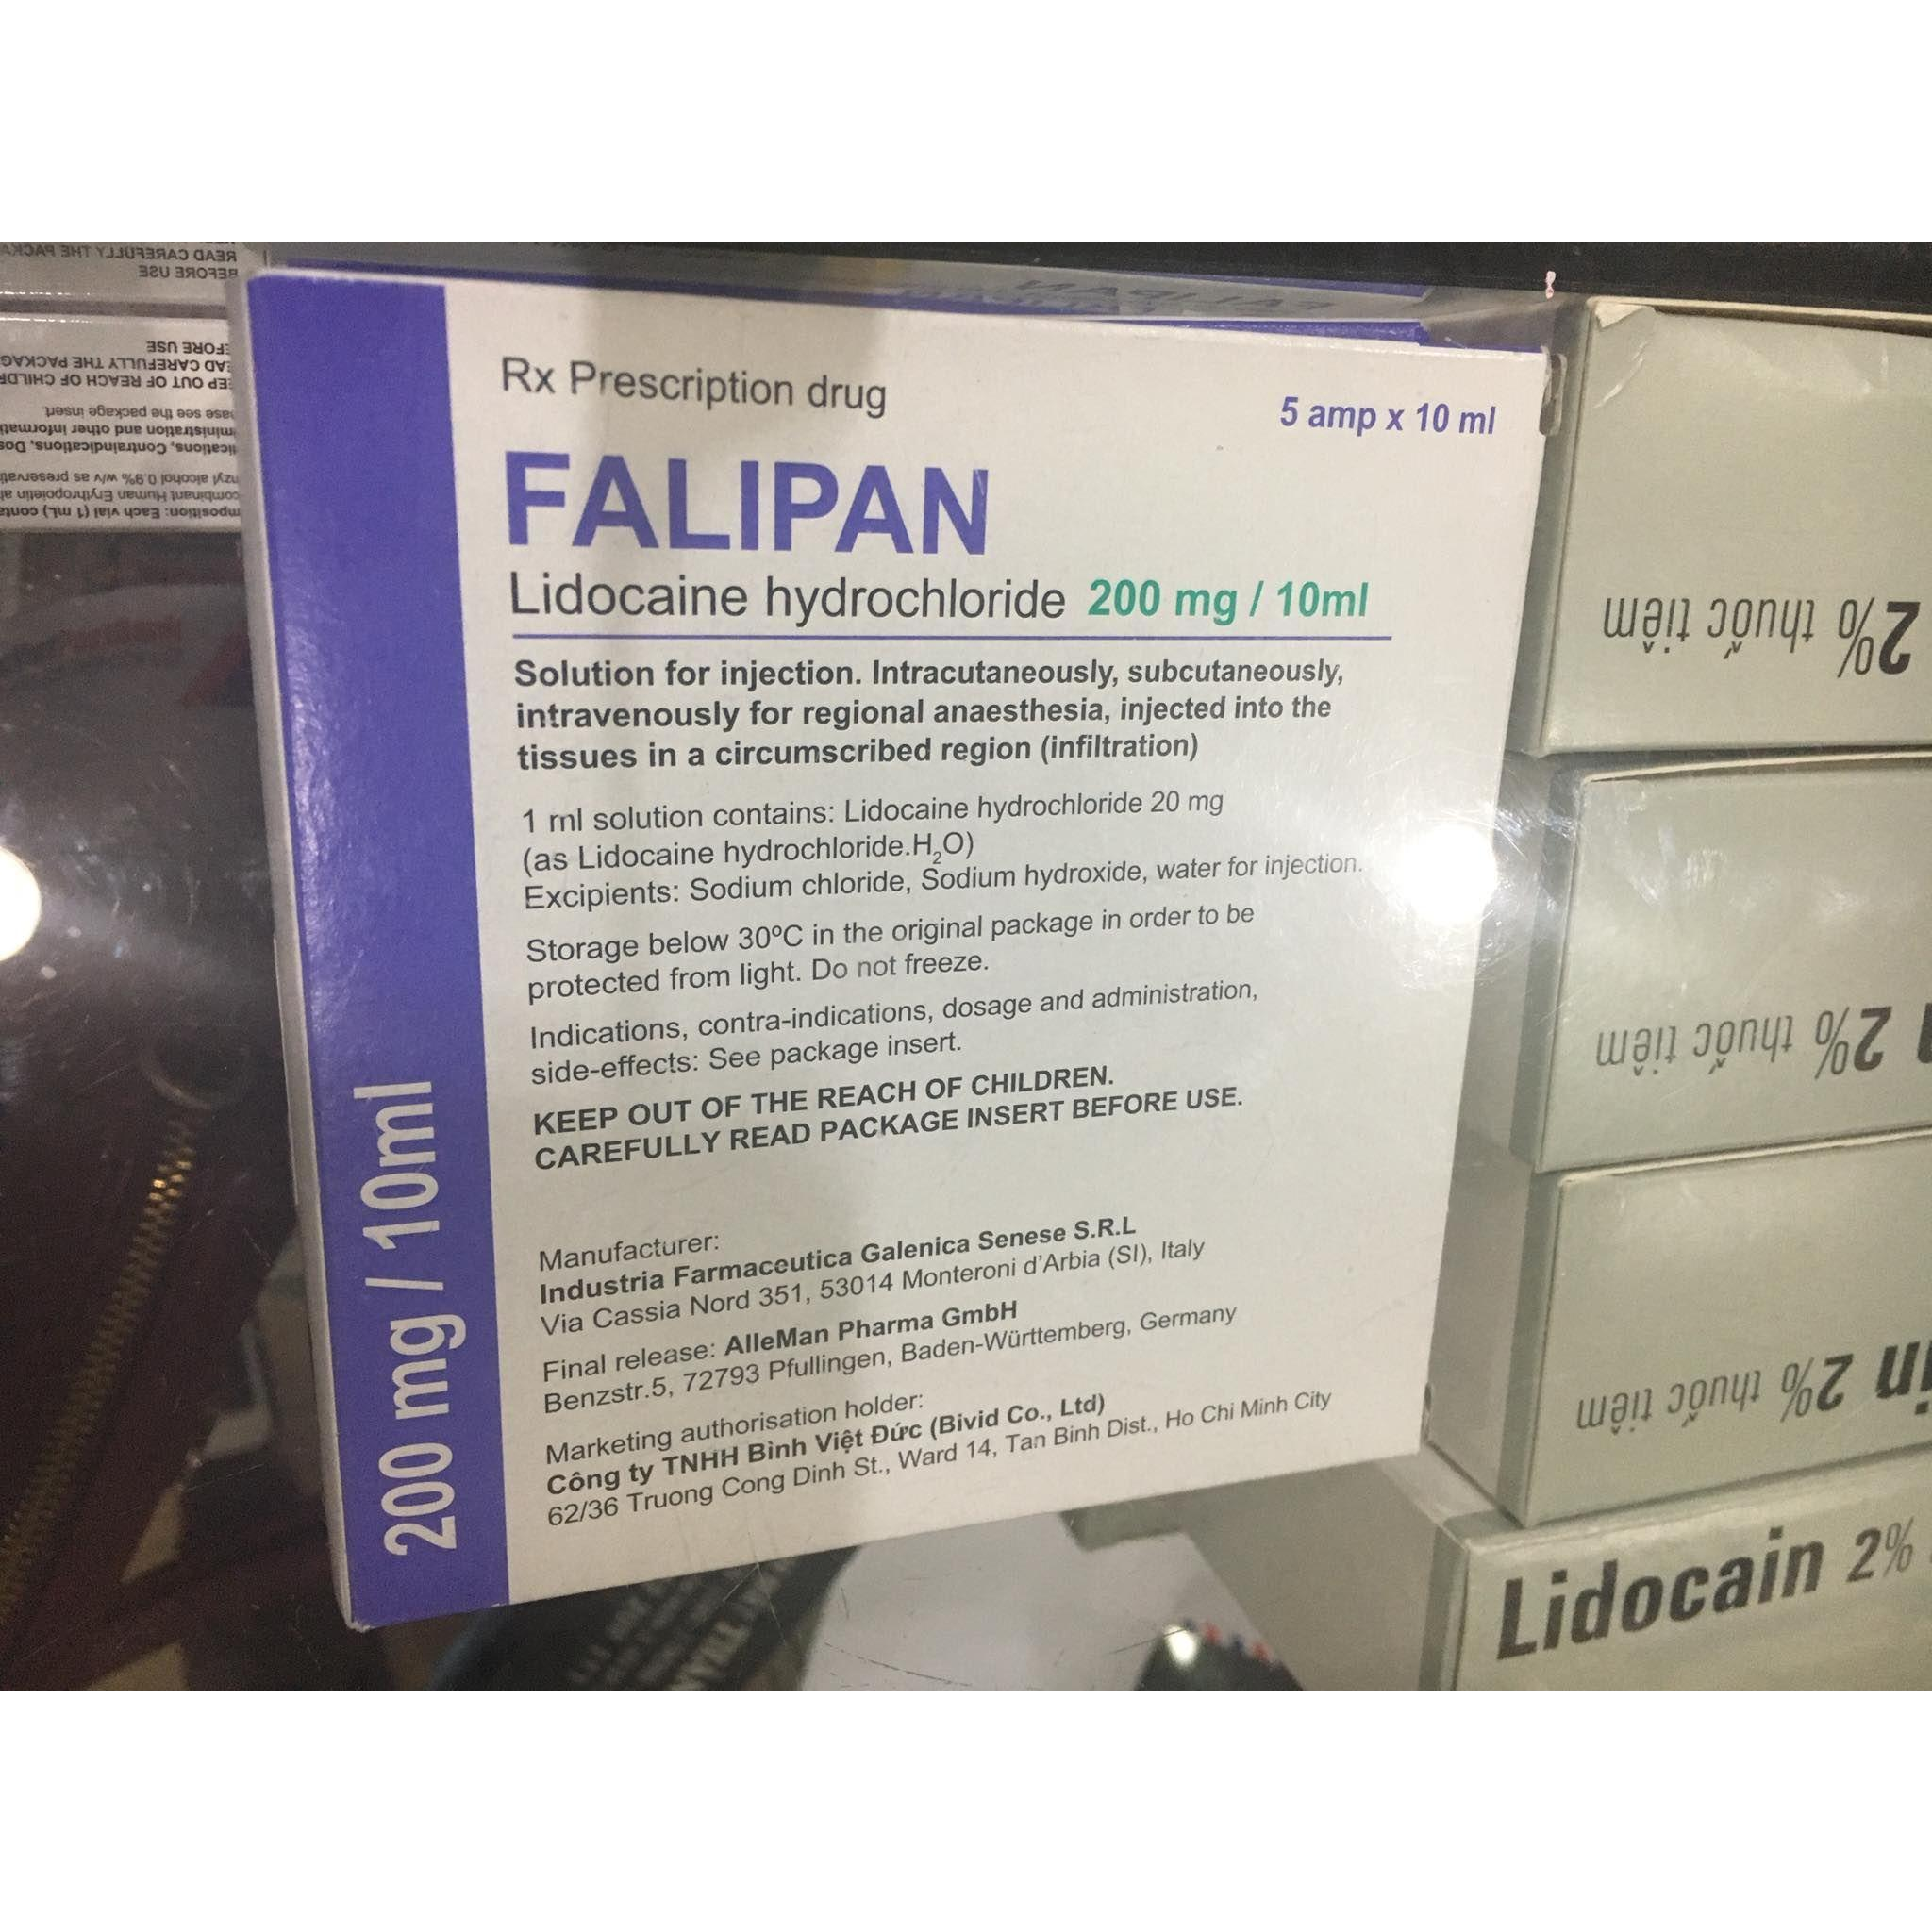 Falipan 200mg/10ml